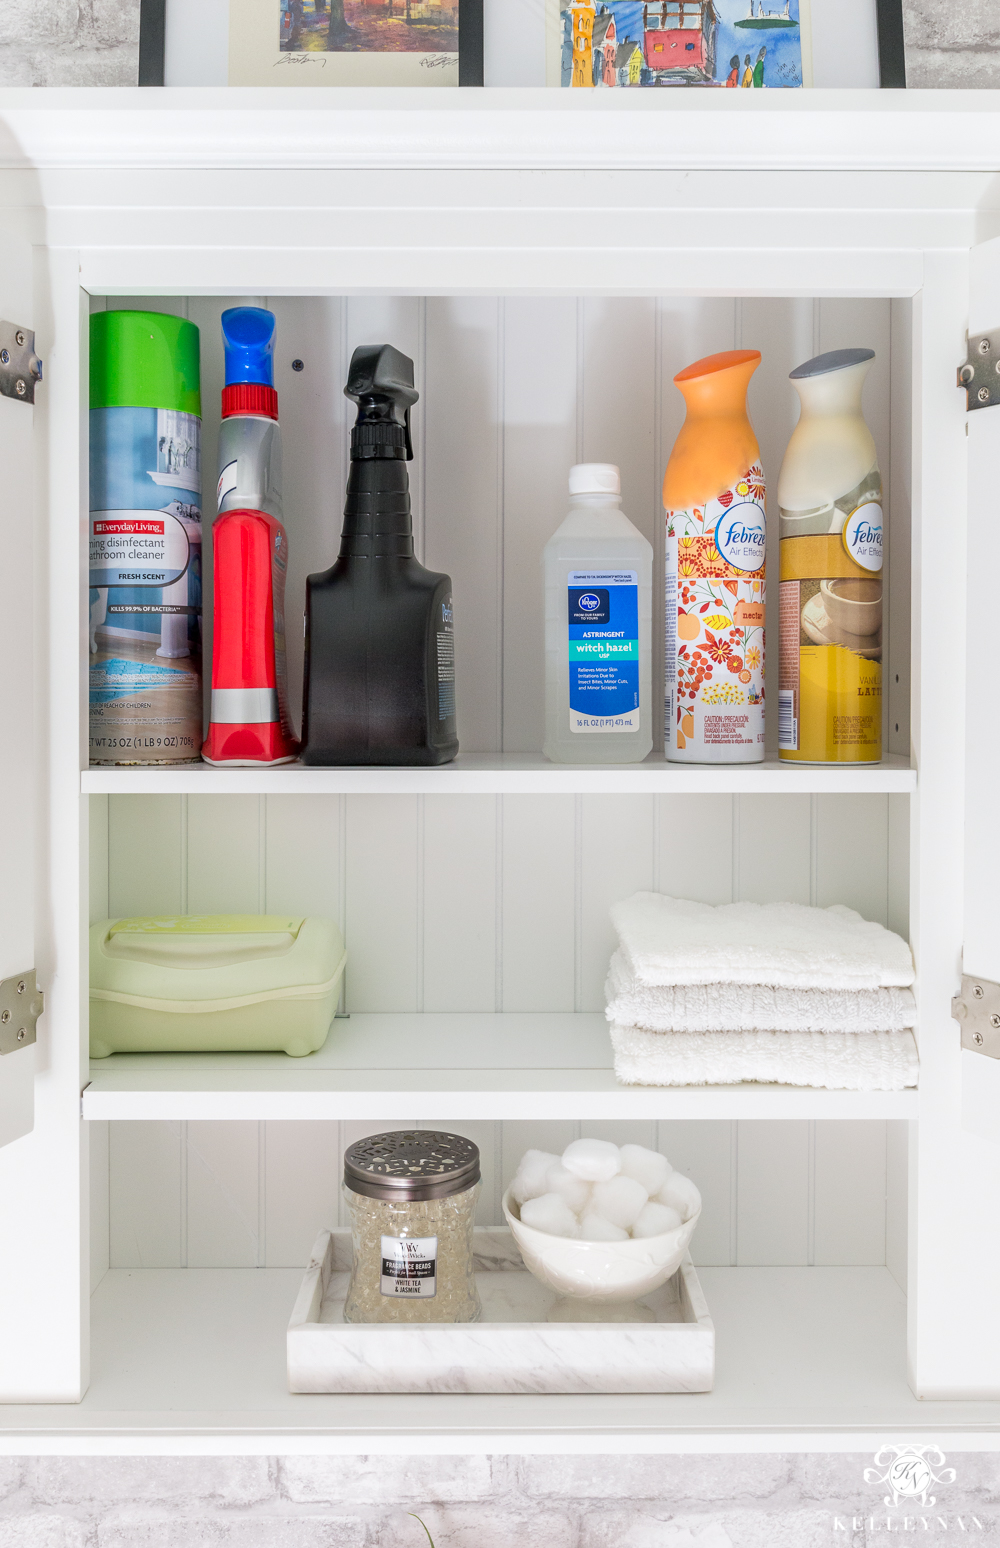 Bathroom Cabinet Storage Ideas in the Toilet Room